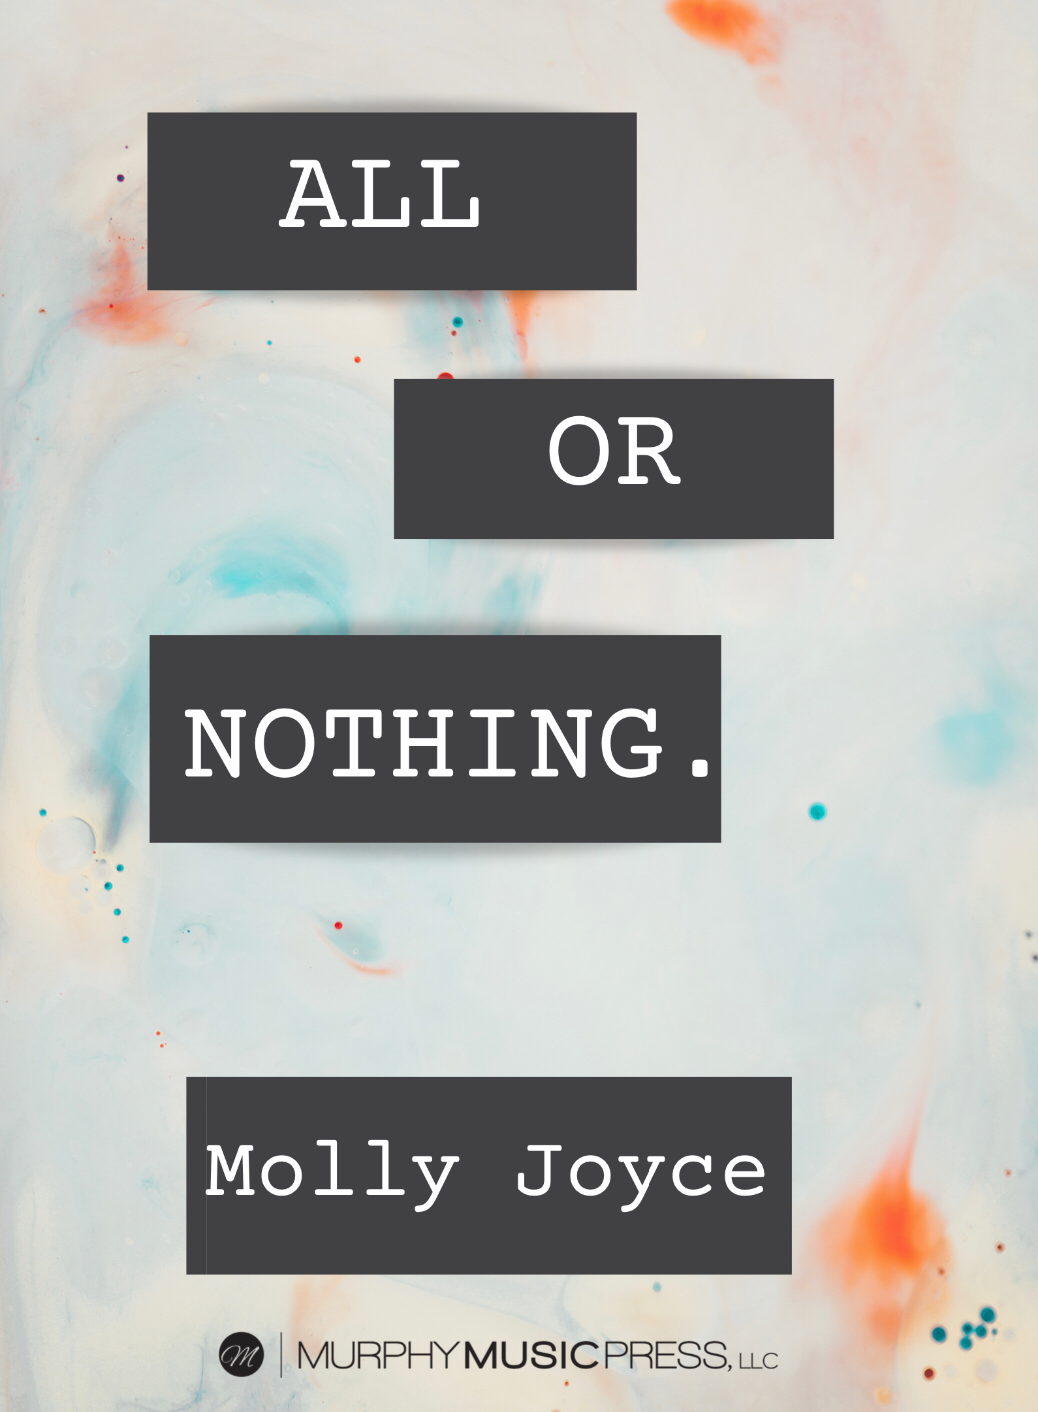 All Or Nothing by Molly Joyce